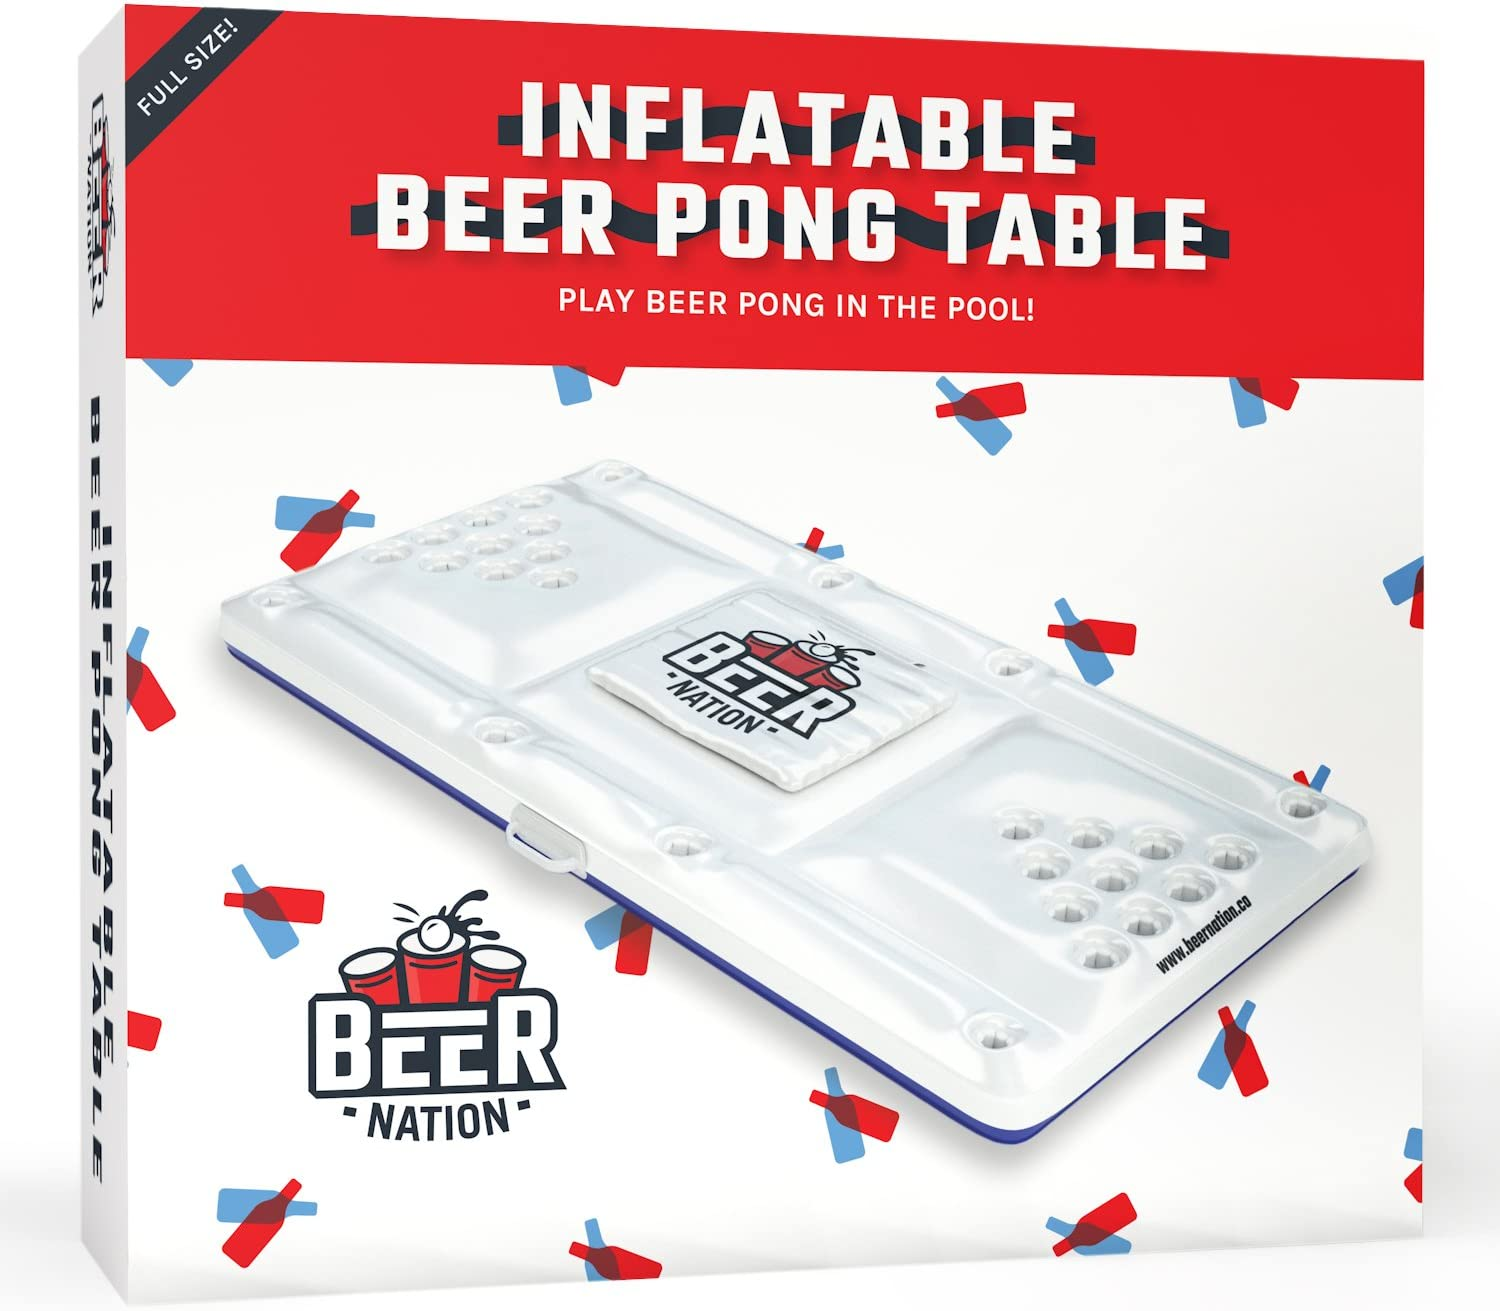 Amazon.com: Beer Nation - Mesa hinchable con enfriador ...